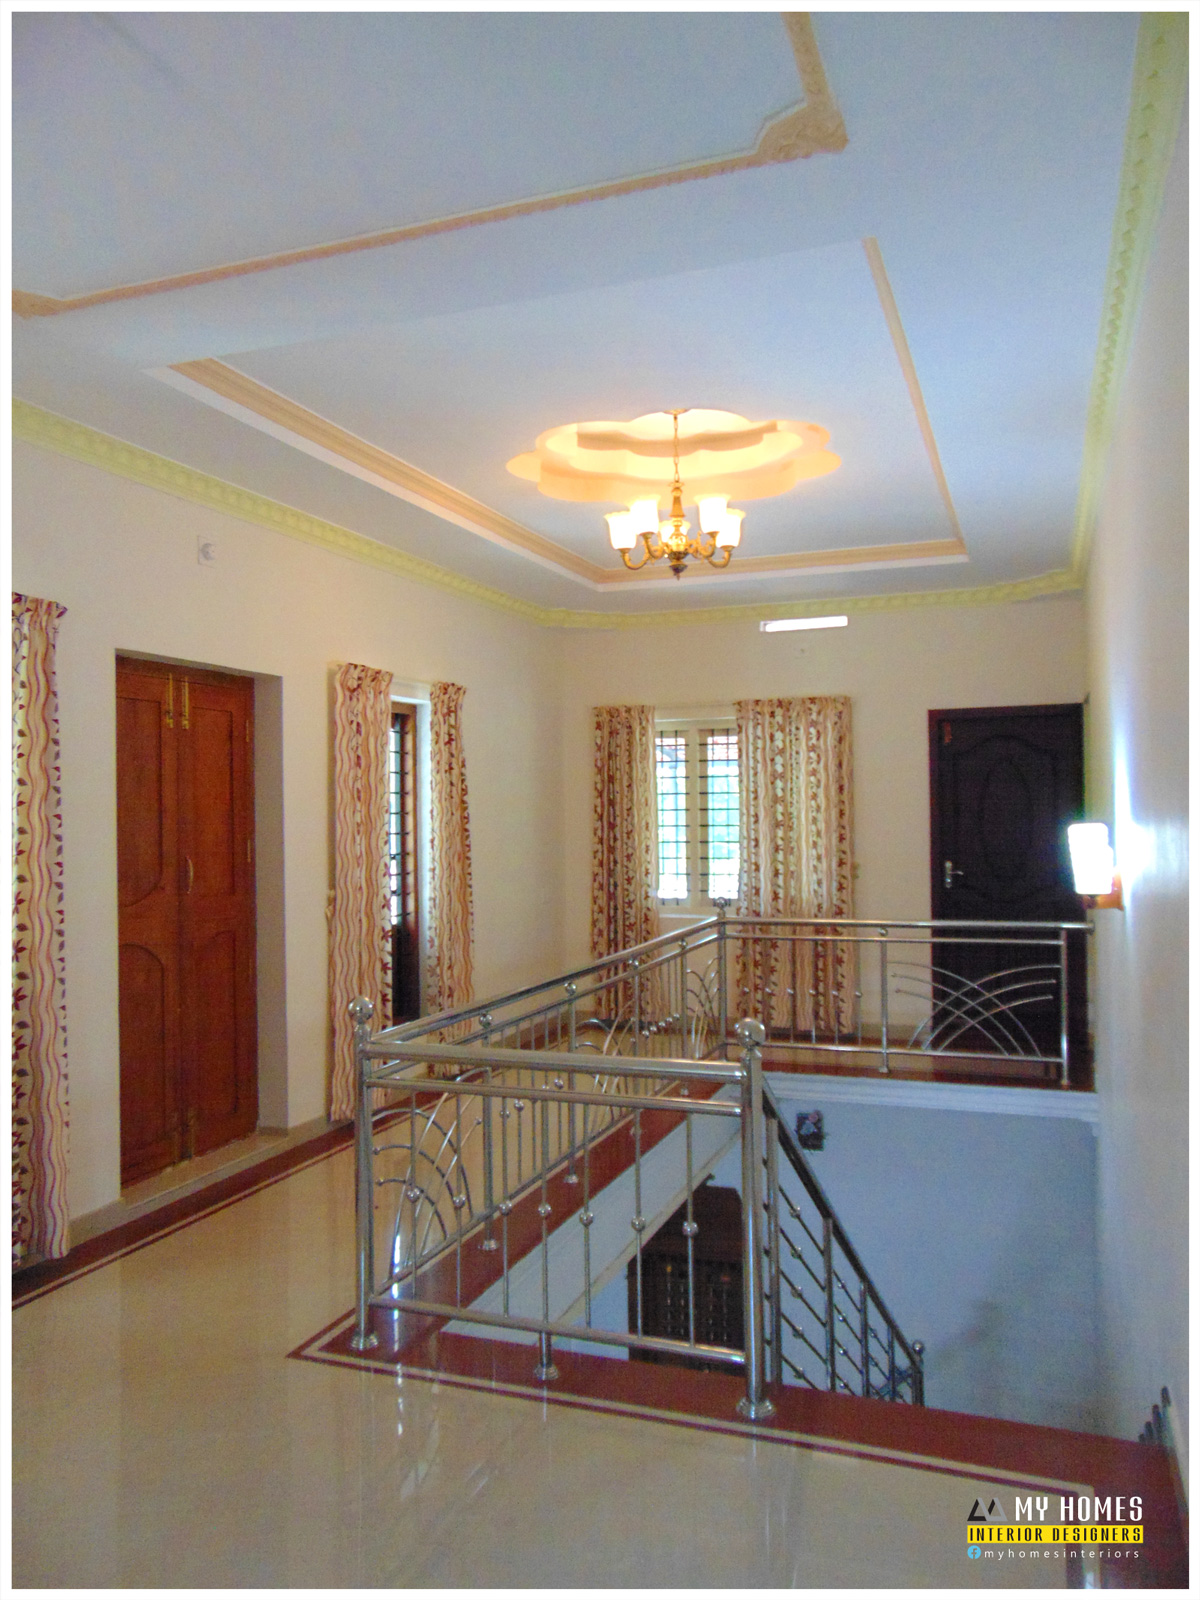 Kerala interior design ideas from designing company thrissur House model interior design